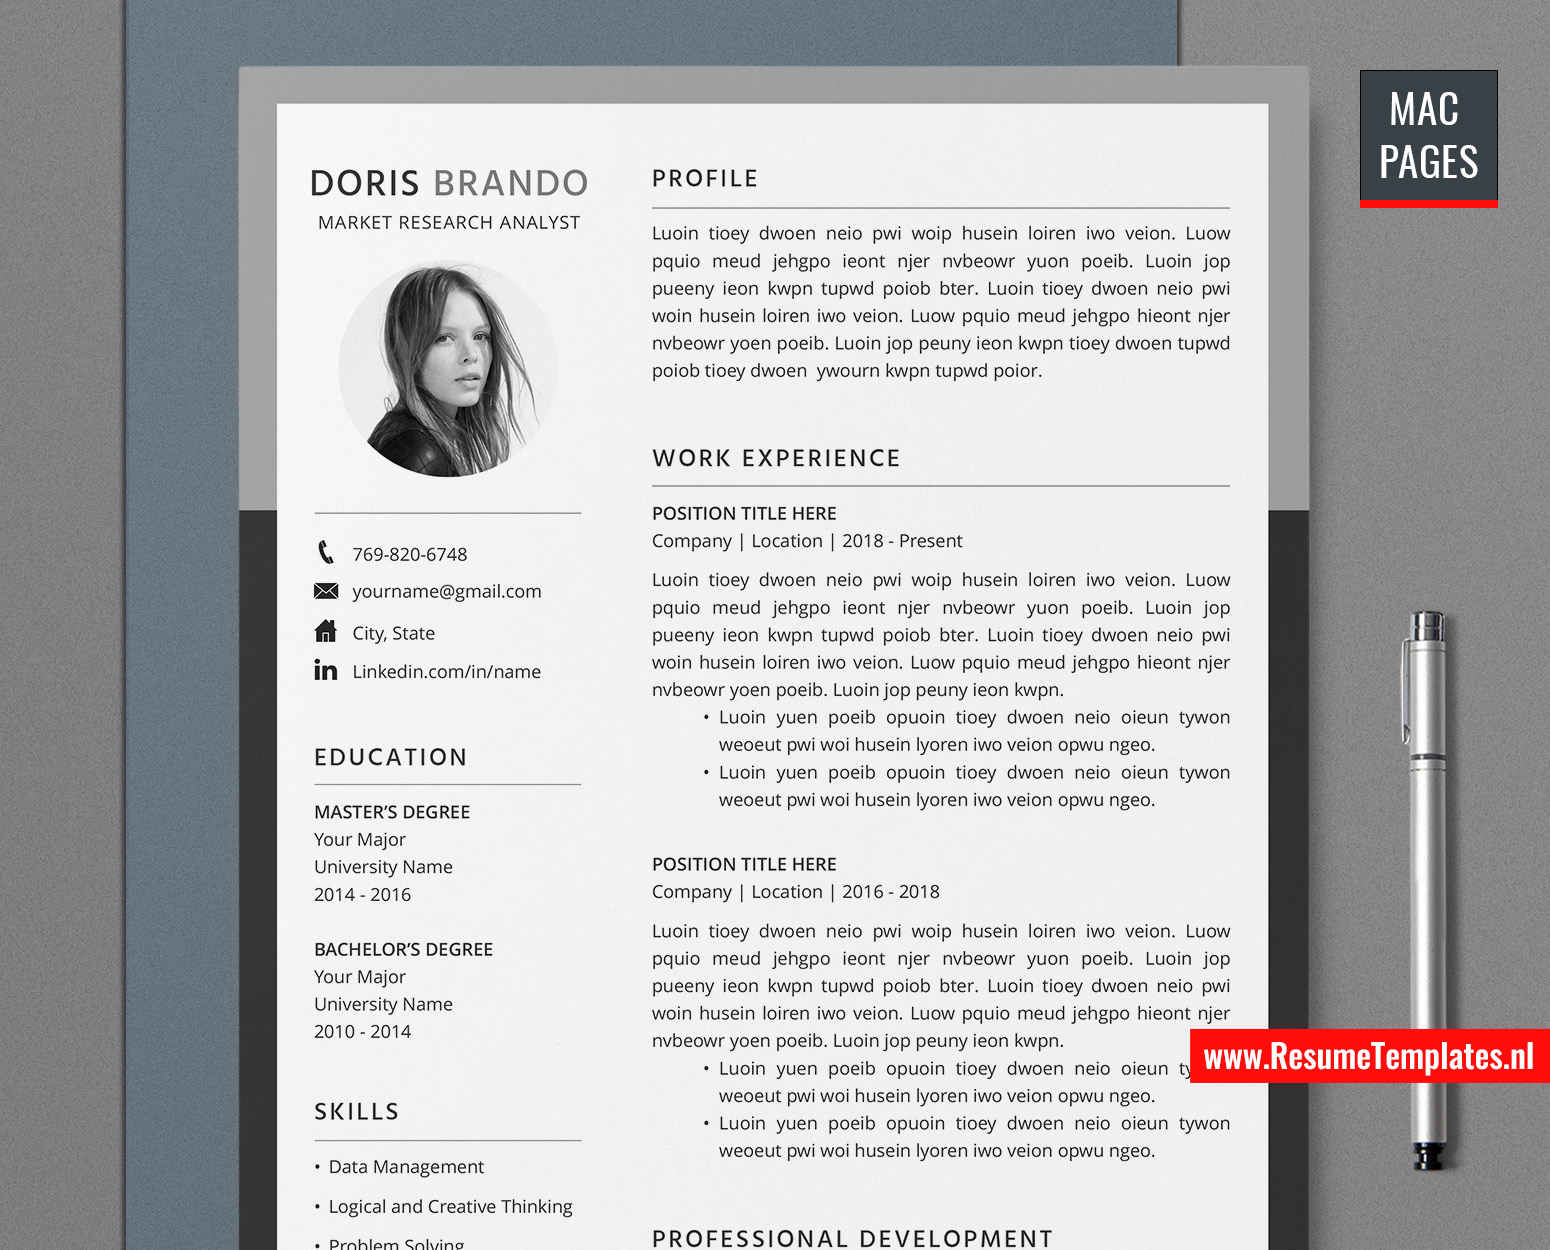 Free resume templates you may already have · 1. For Mac Pages Professional Resume Template Cv Template For Mac Pages With Cover Letter And References Template Modern Cv Template Job Resume 1 Page 2 Page 3 Page Resume Instant Download Resumetemplates Nl